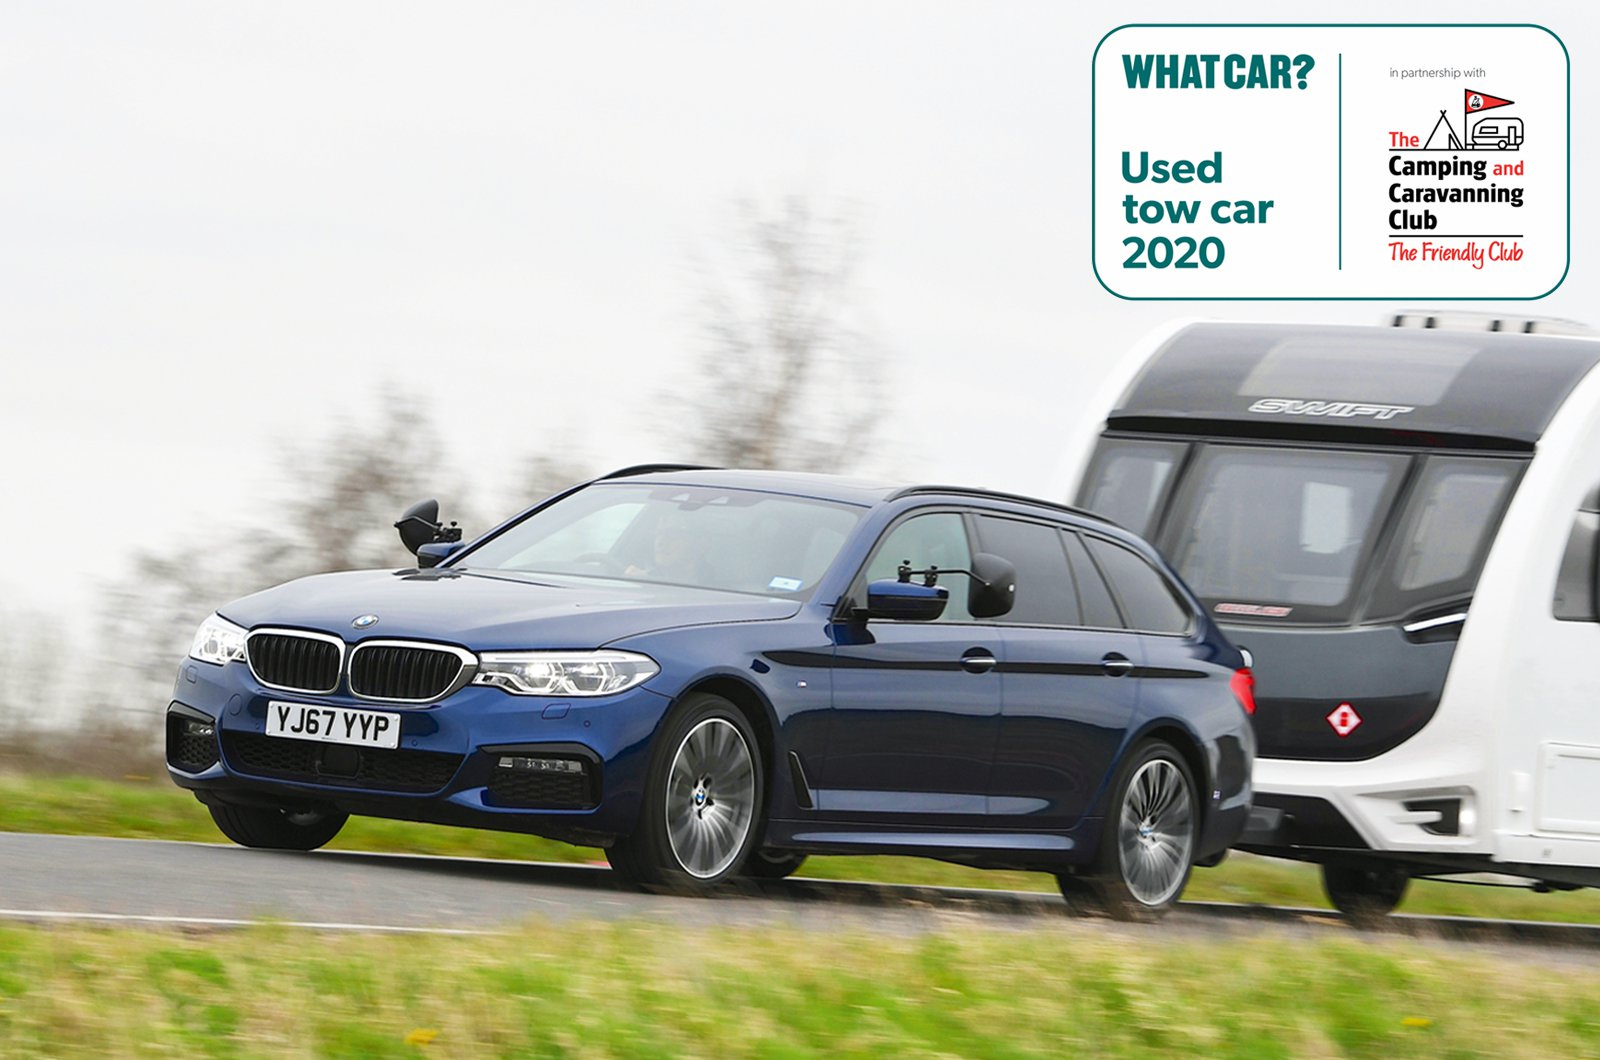 Used Tow Car - BMW 5 Series Touring